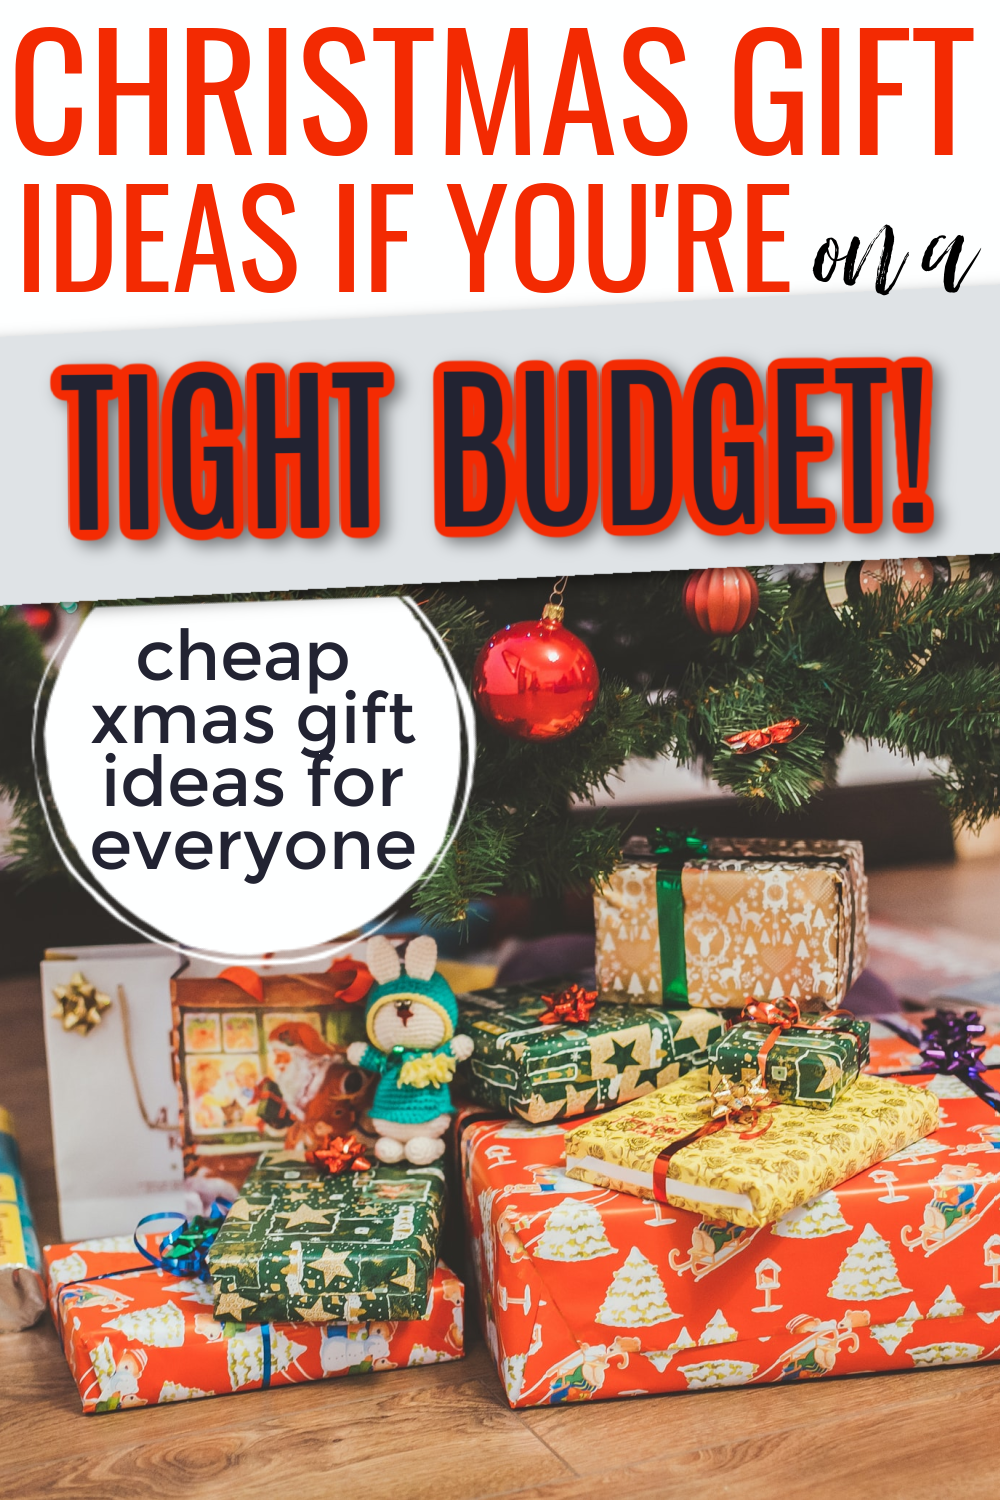 Christmas Gifts On A Budget In 2020 Christmas Gifts Inexpensive Christmas Gifts Christmas On A Budget